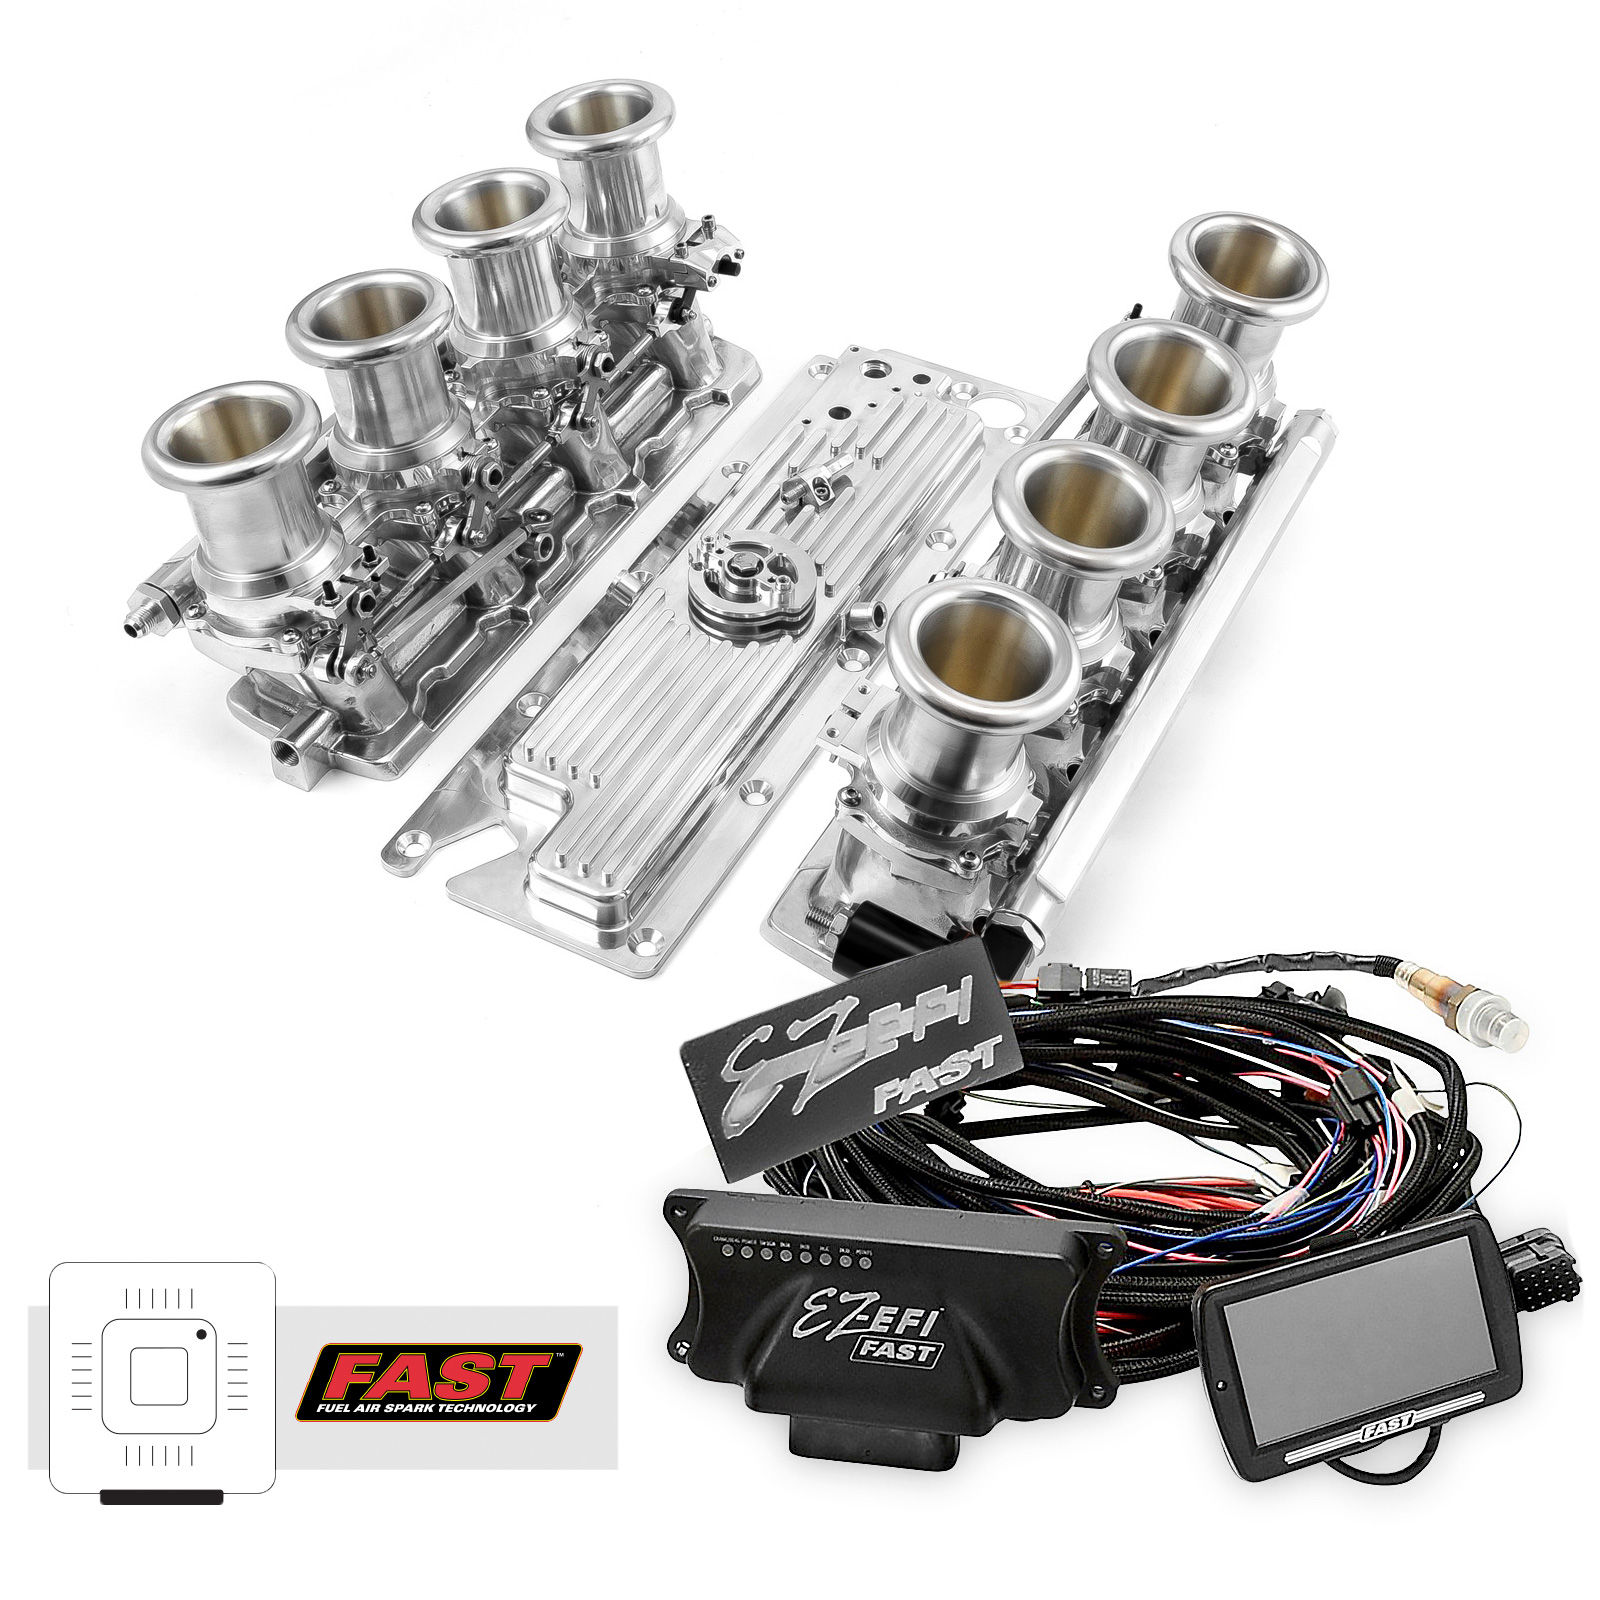 Chevy GM LS1 Downdraft + FAST EZ-EFI 2.0 Fuel Injection System - Polished